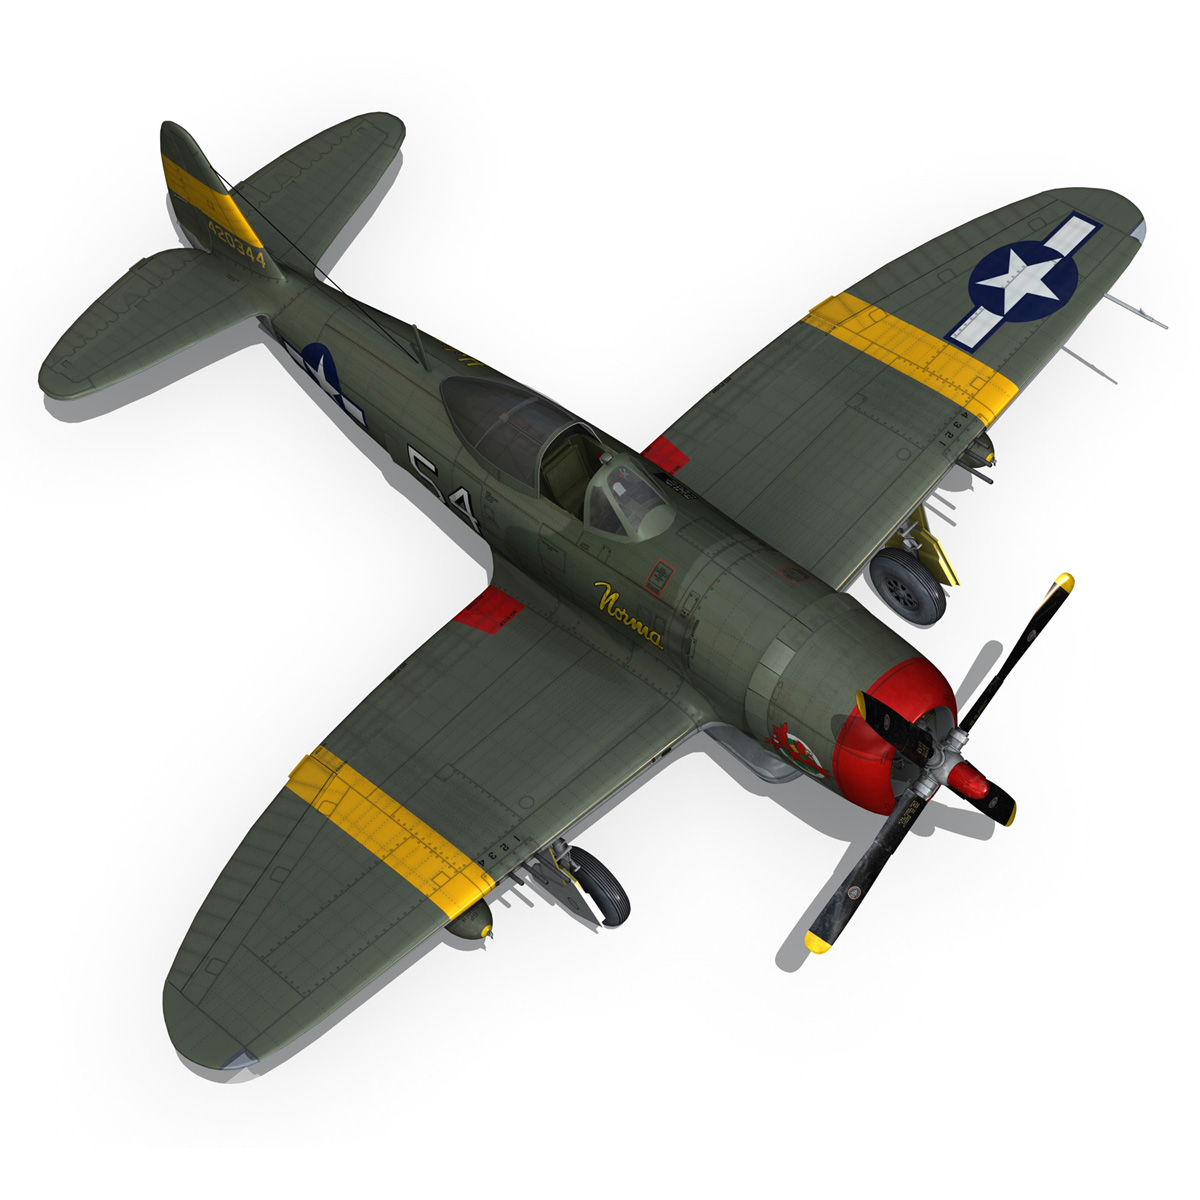 republic p-47d thunderbolt – little bunny 3d model fbx c4d lwo obj 274233